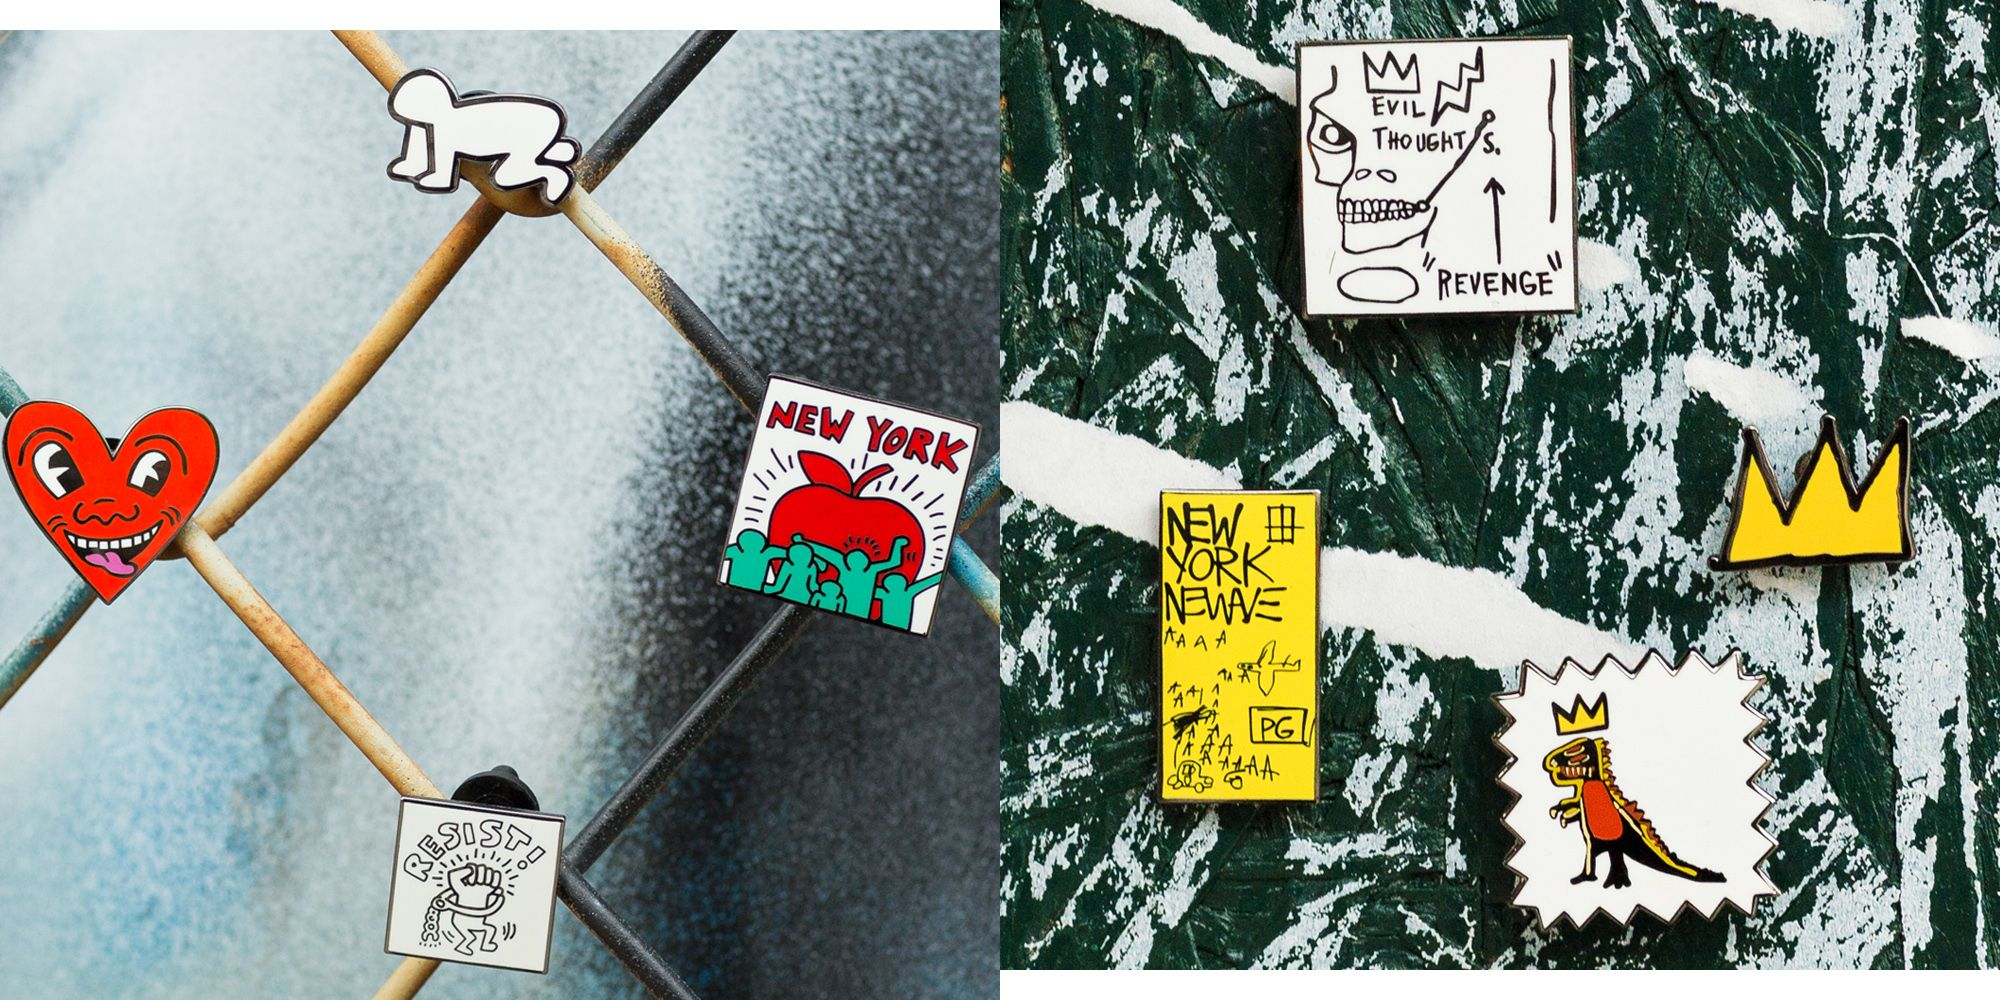 cfd6a34a Uniqlo Dropped Basquiat and Keith Haring Pins Just in Time for Peak Jacket  Season